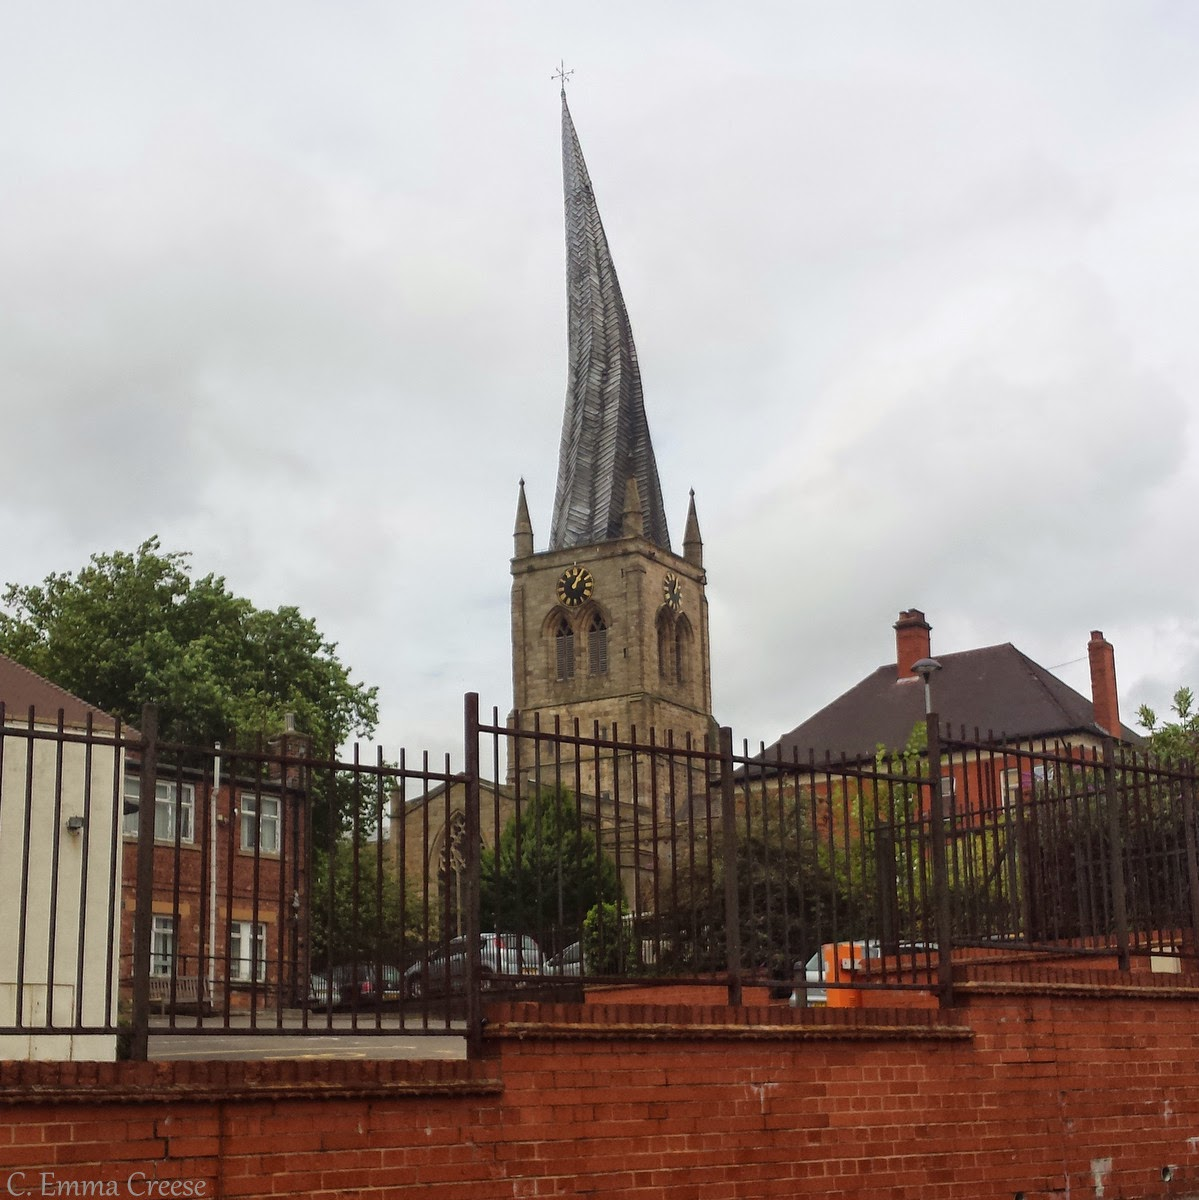 Roadtrip to Derbyshire: Crooked spires and a couple of tarts - Chesterfield